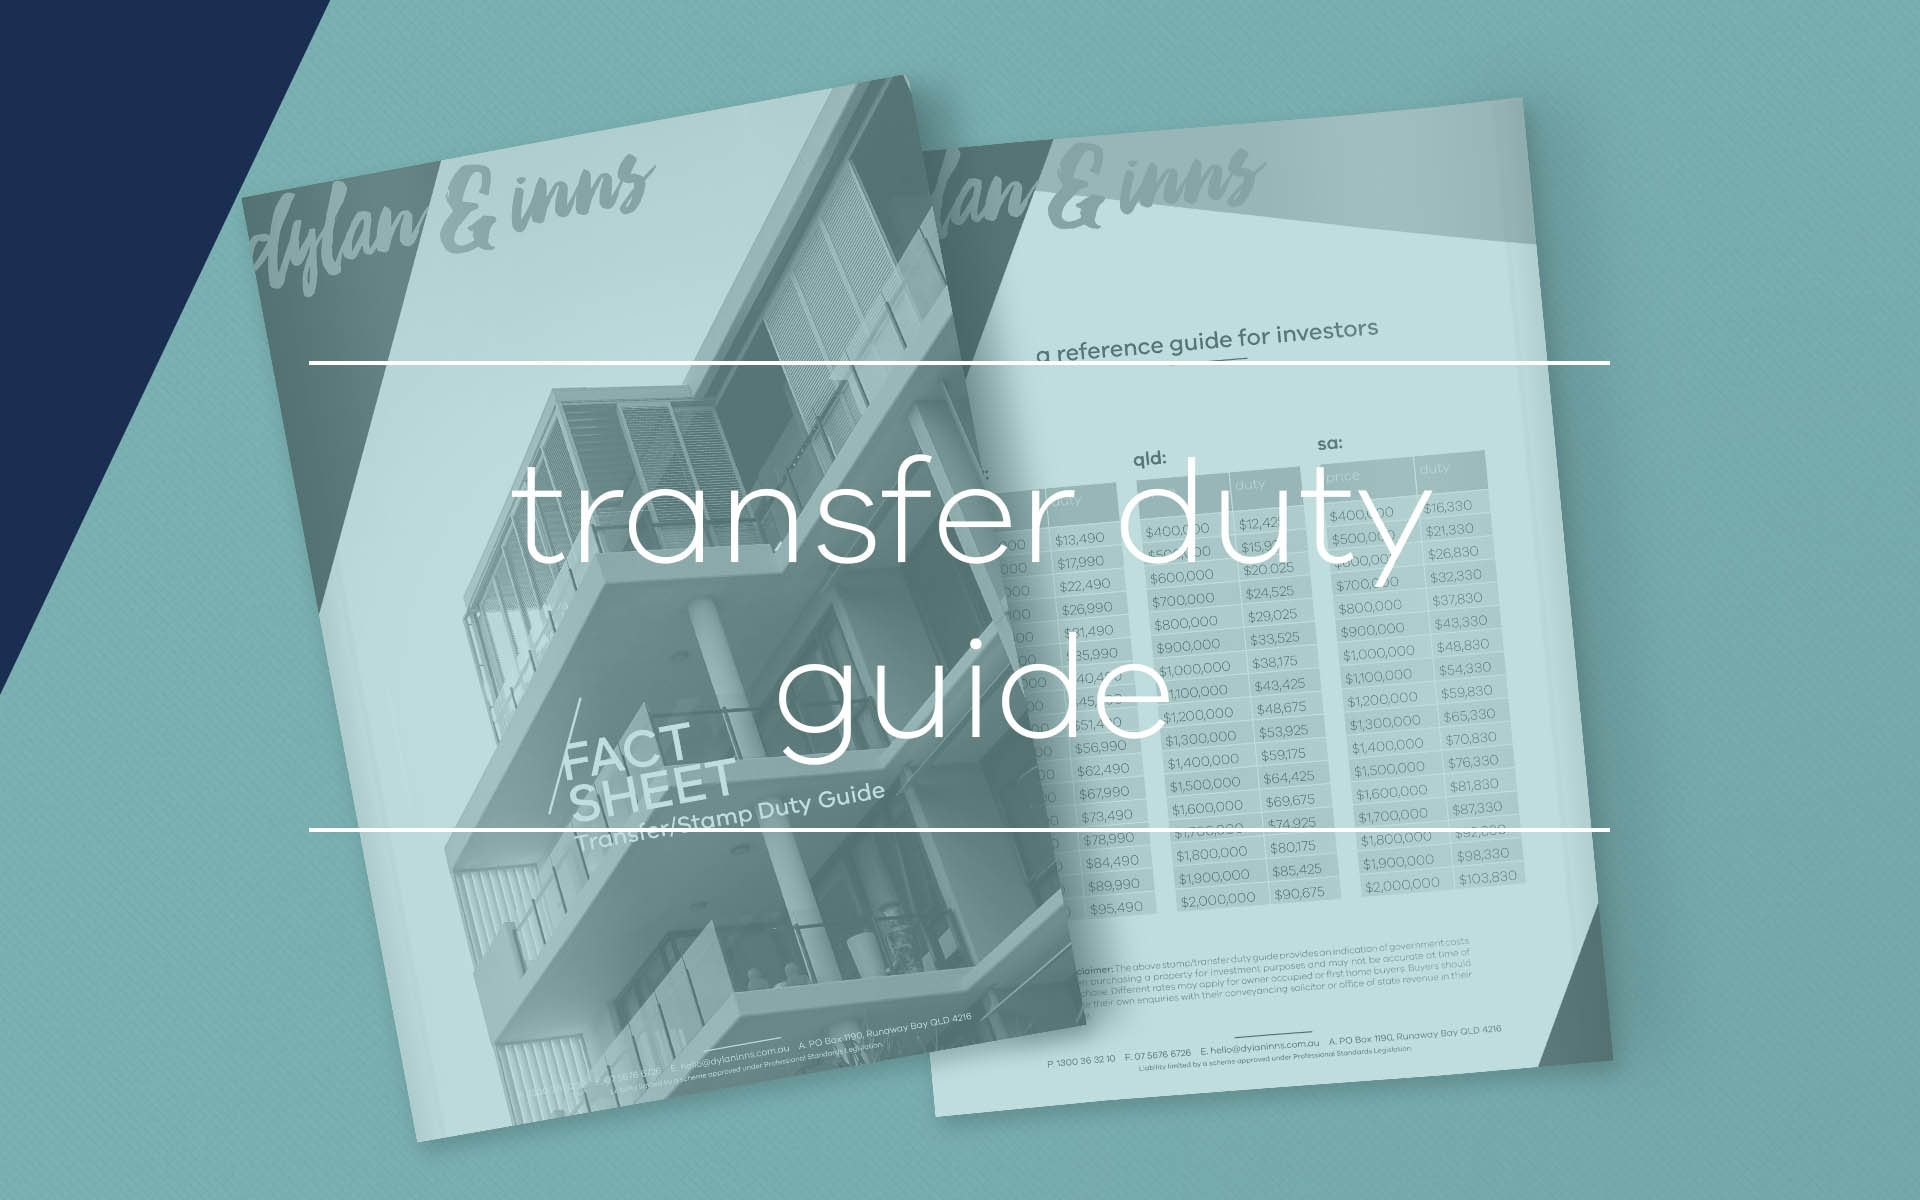 If you are a property investor looking to purchase a new property this guide by our conveyancing solicitors provides additional information on the amount of transfer, or stamp, duty payable.